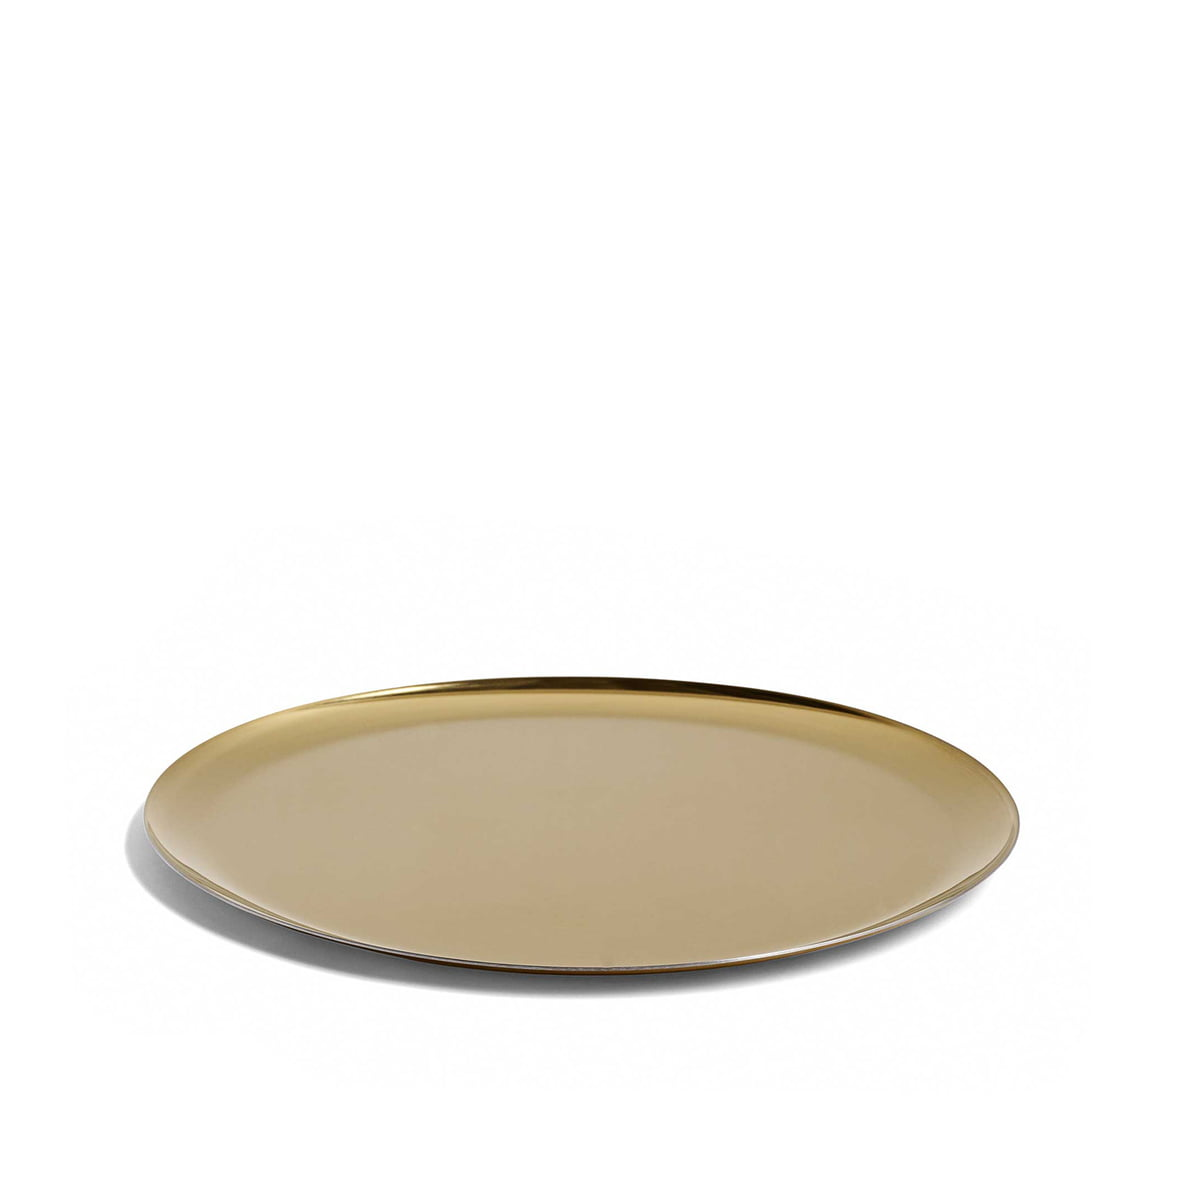 Hay serving tray gold frei